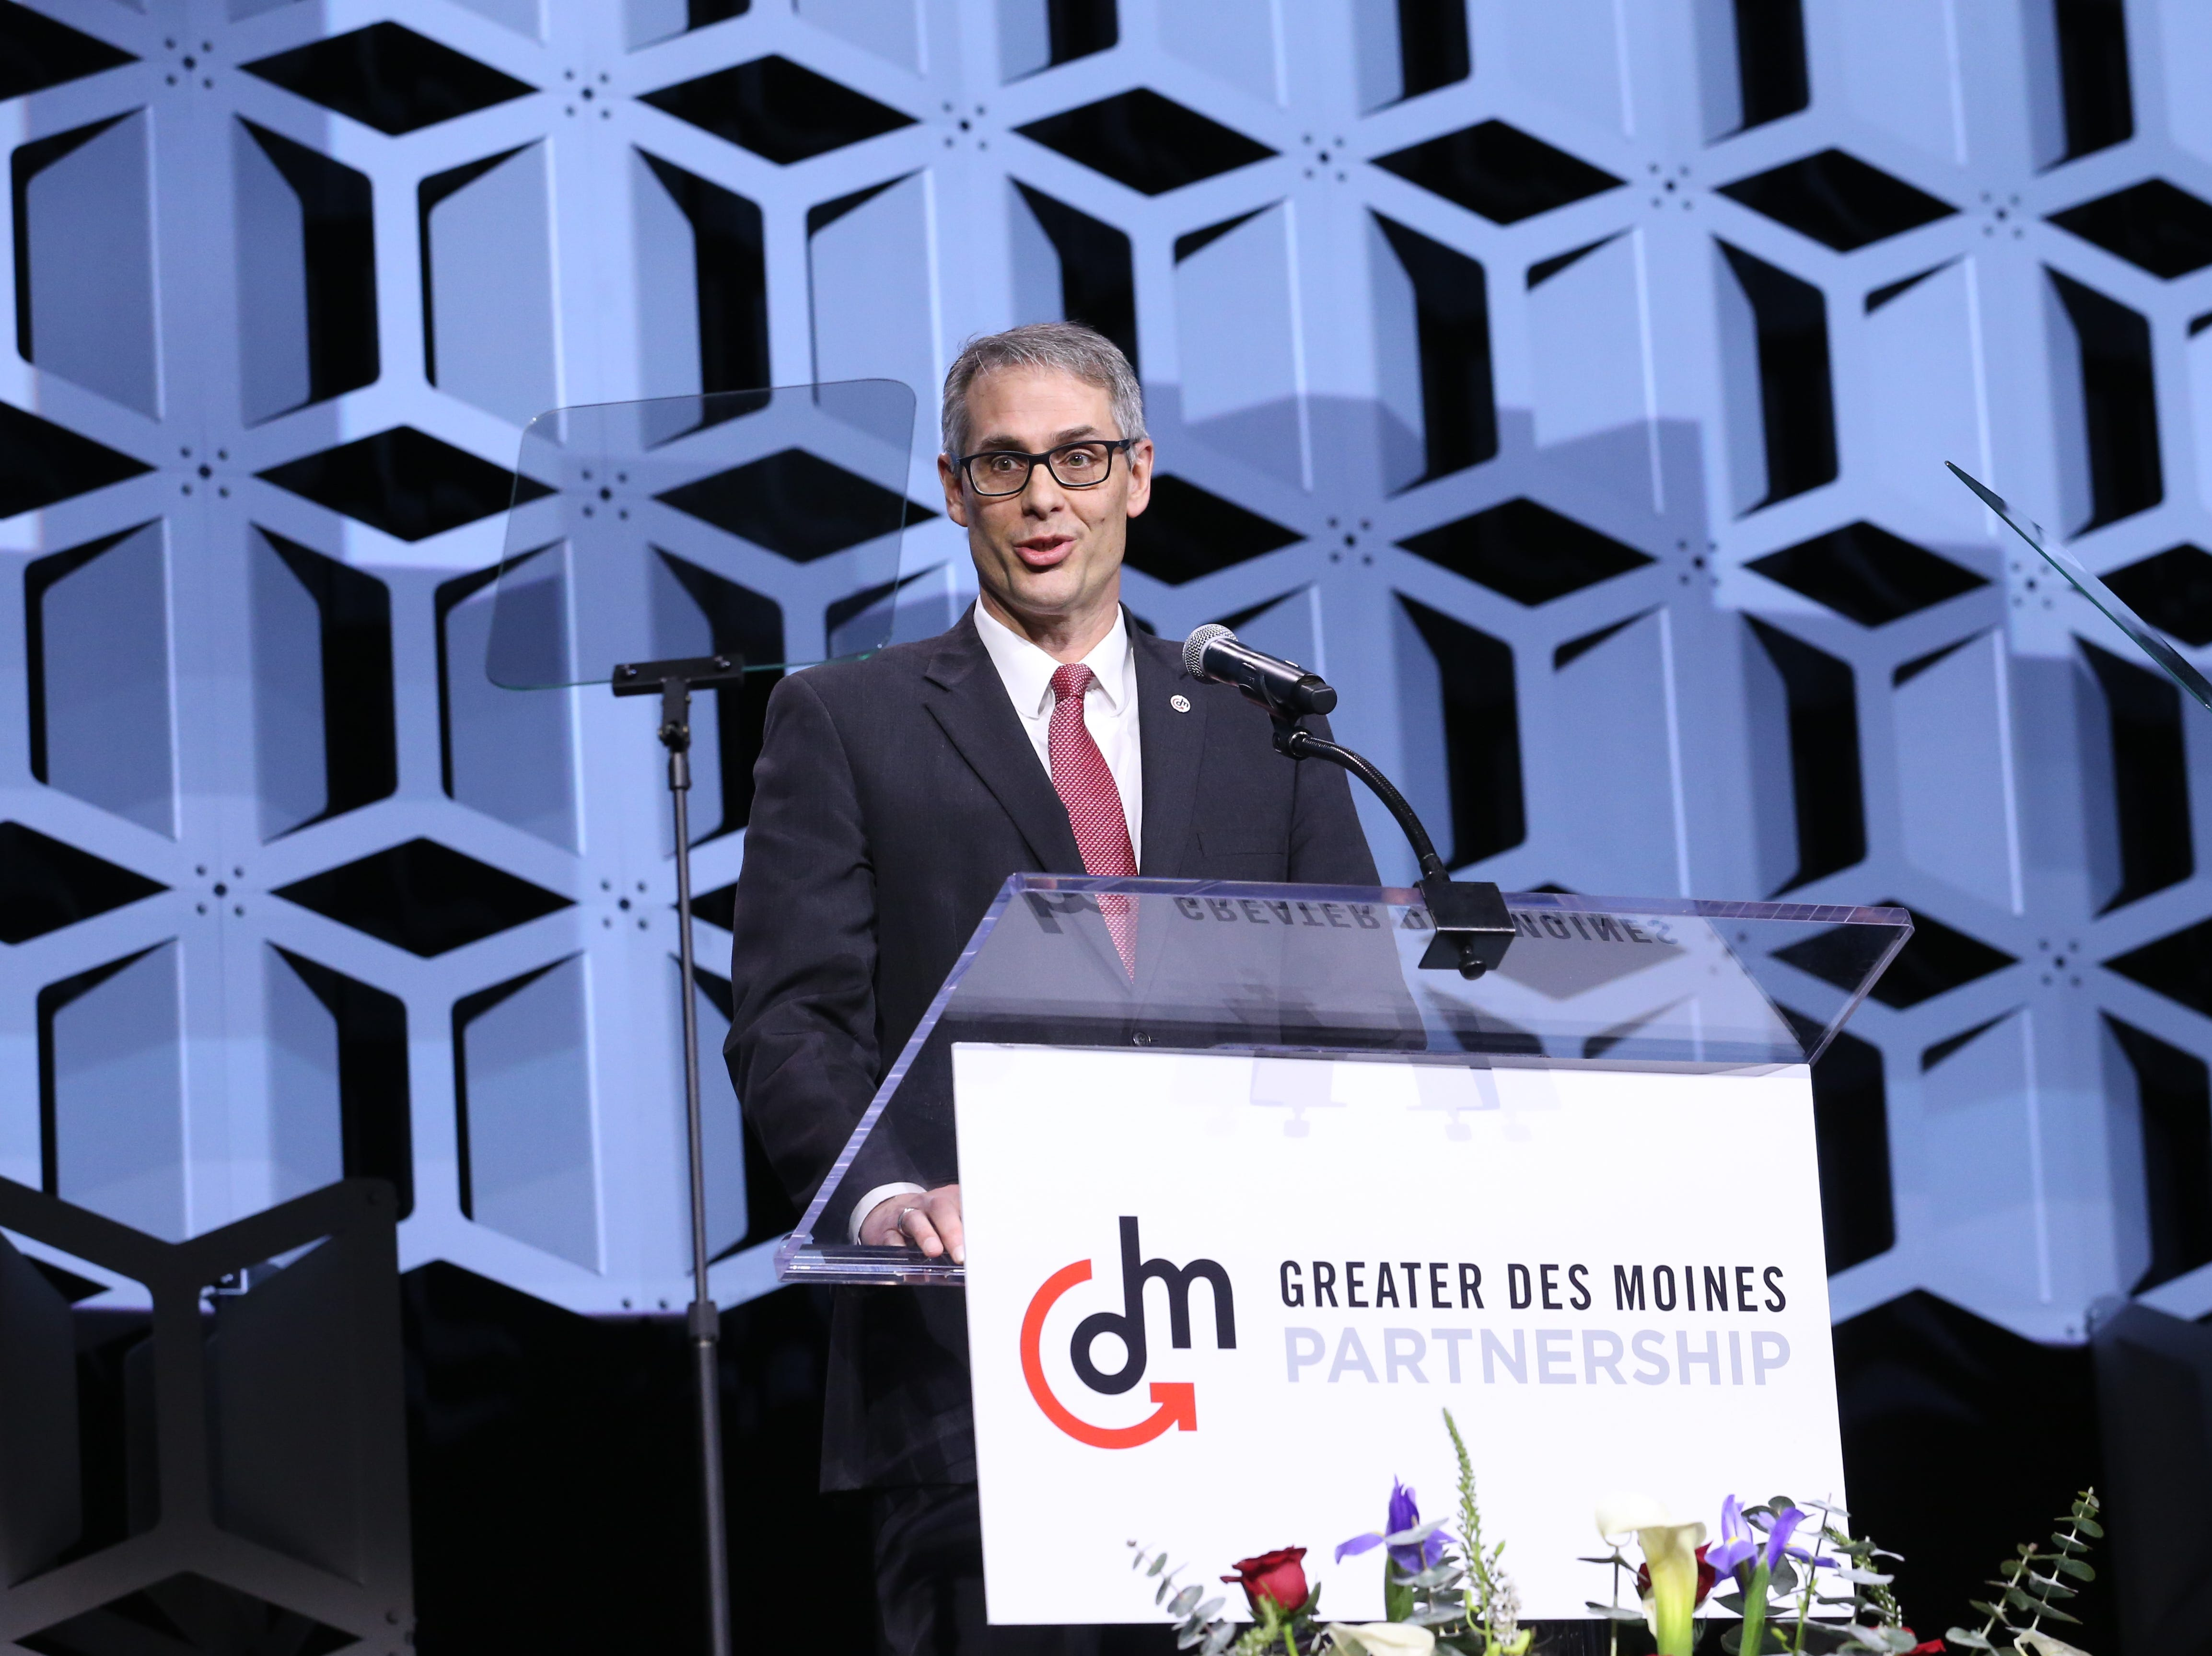 Greater Des Moines Partnership CEO Jay Byers at the Partnership's Annual Dinner on January 17, 2019 at the Iowa Events Center.